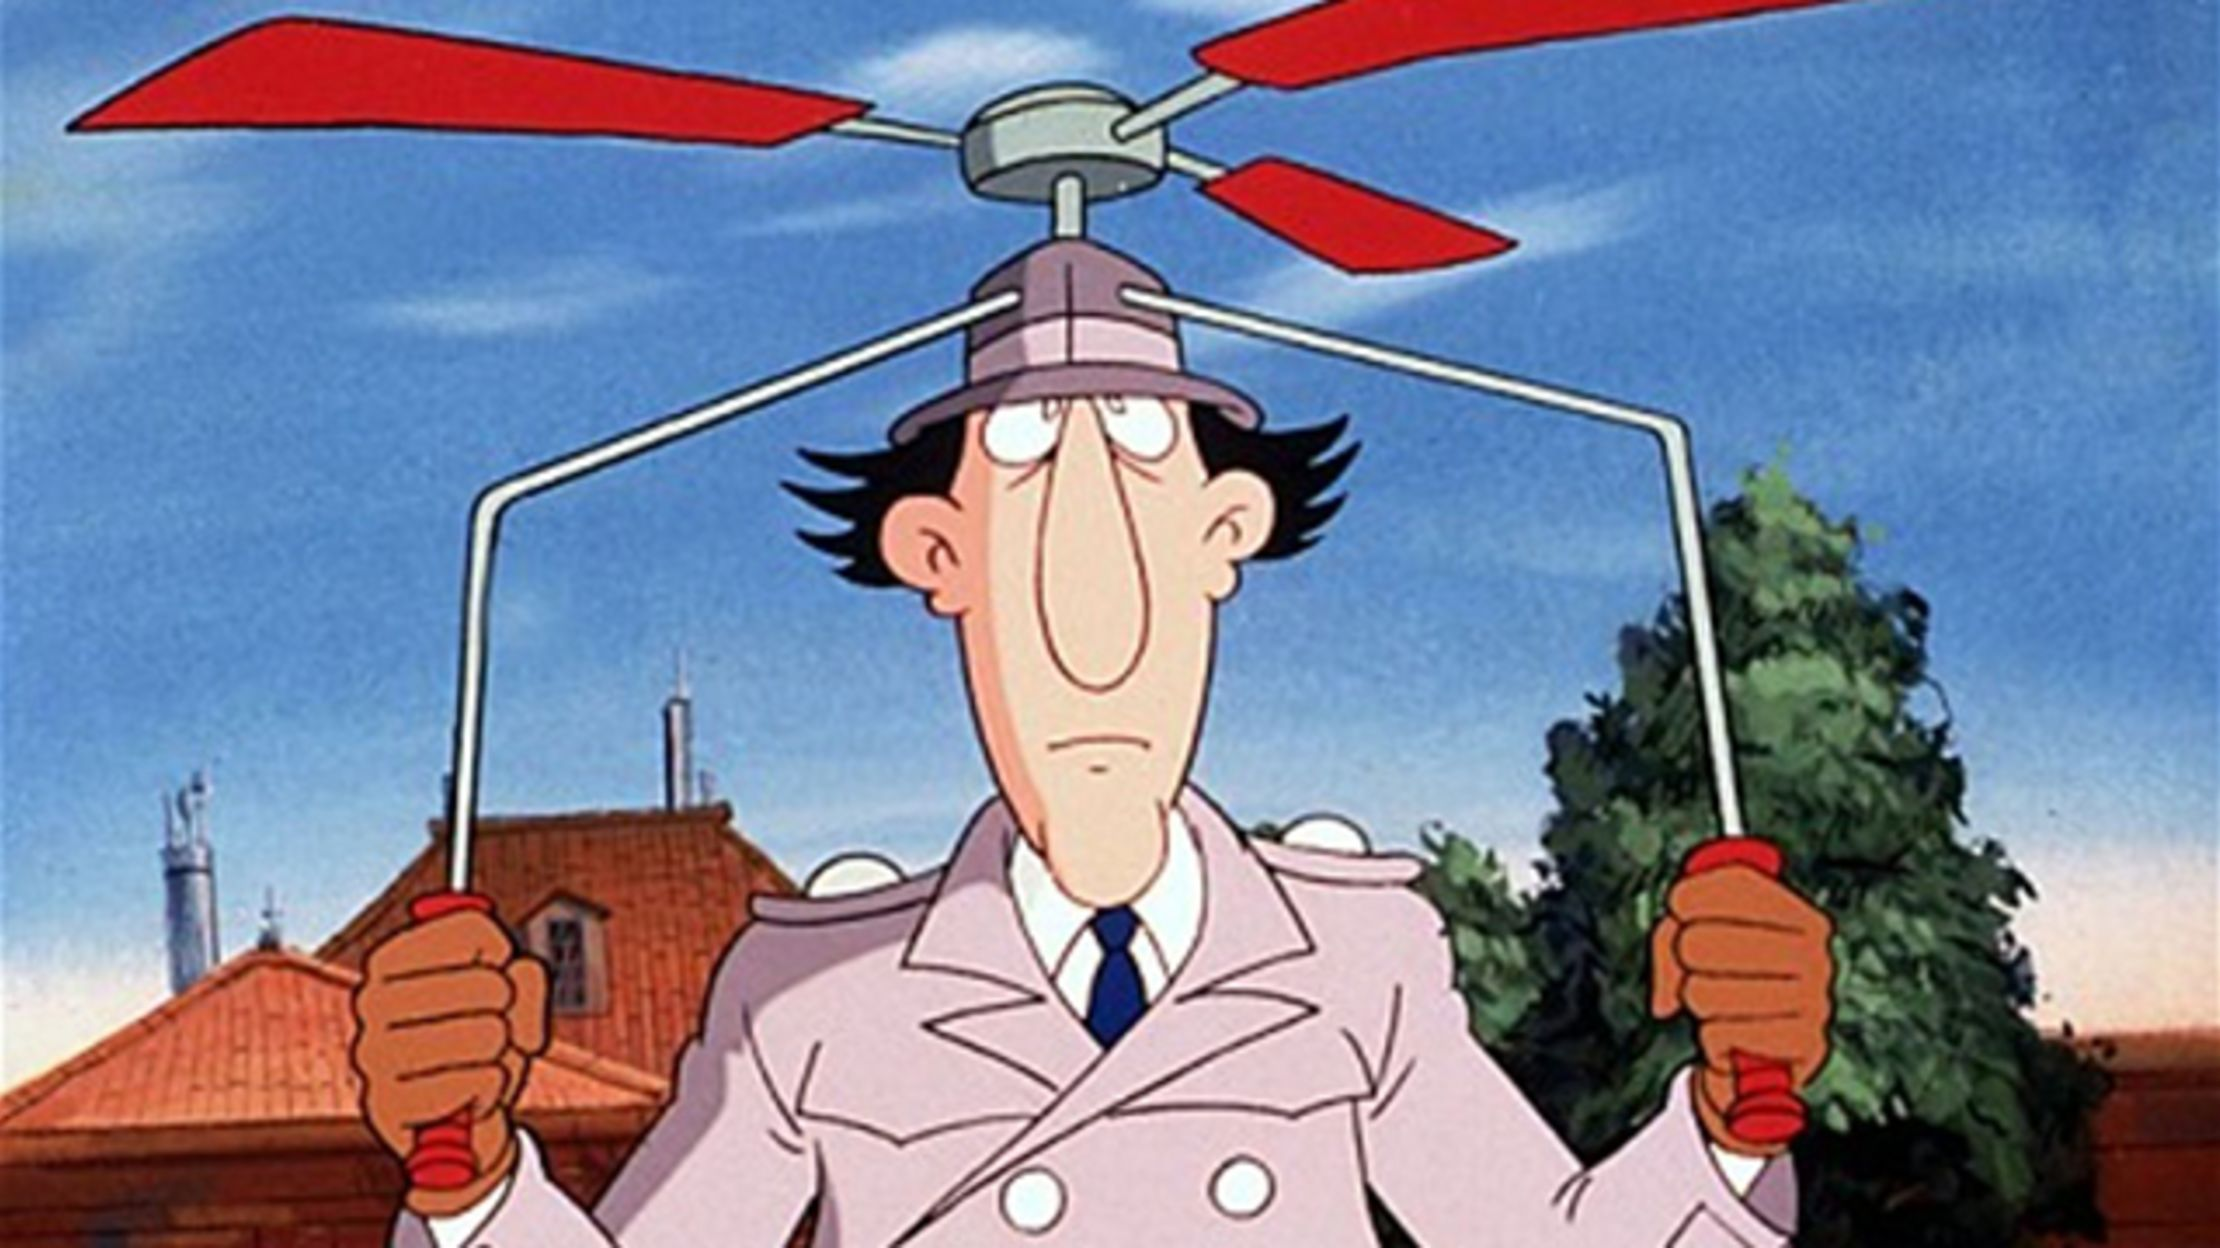 18 Things You Might Not Know About 'Inspector Gadget' | Mental Floss